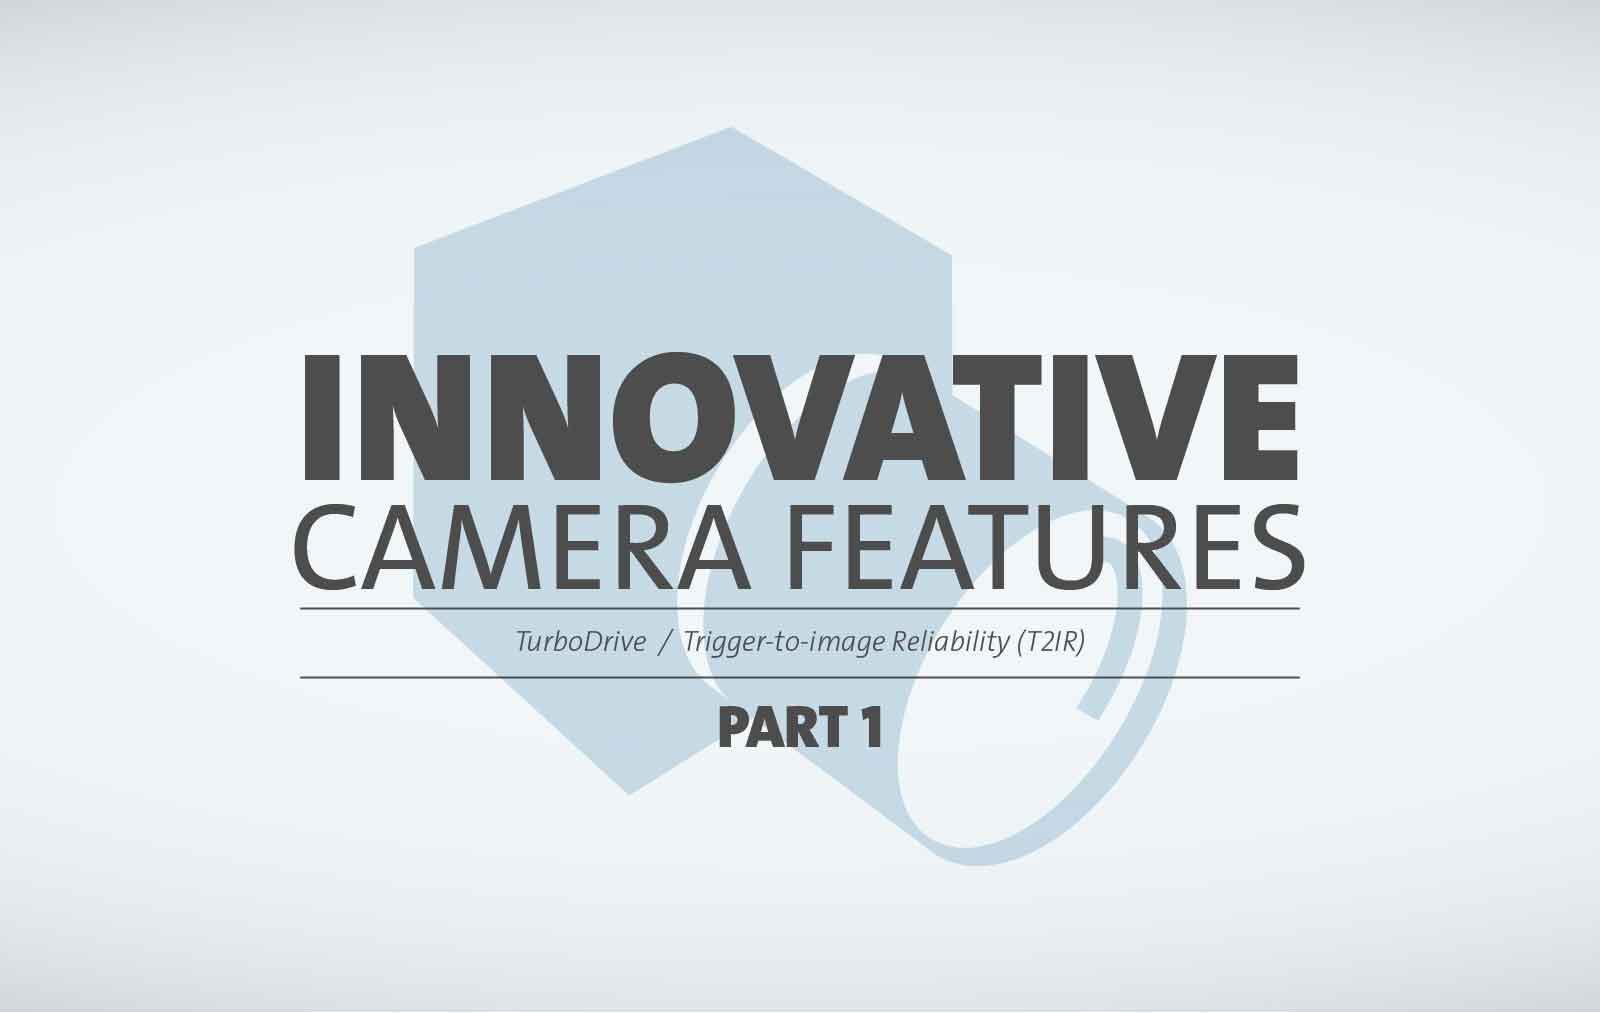 Innovative Camera Features - Part 1 - TurboDrive & T2IR